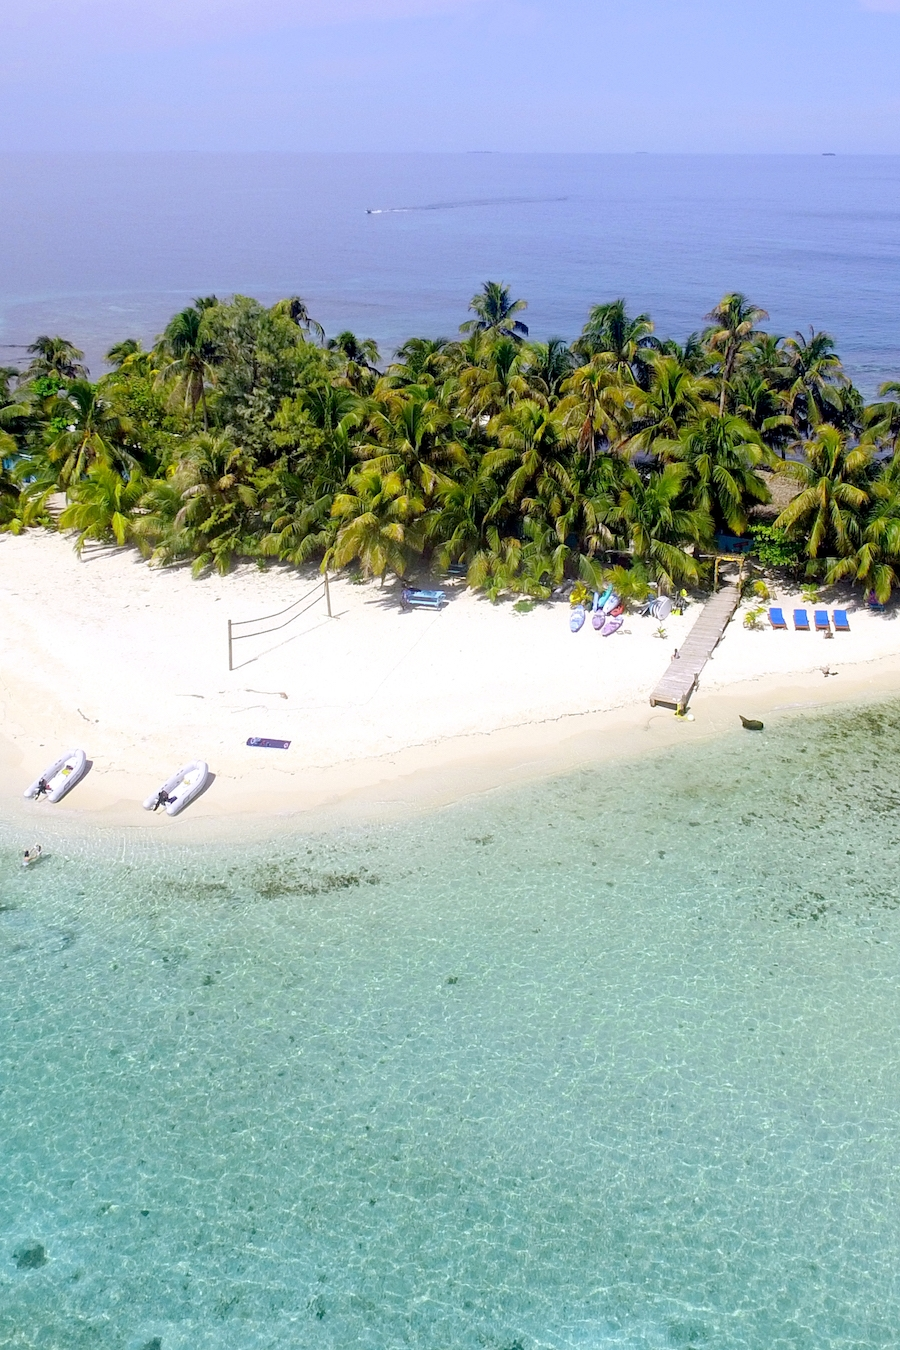 Our private Island - Explore Belize Ocean Club's private island with our day trip, the Ranguana Tropical Island Experience.